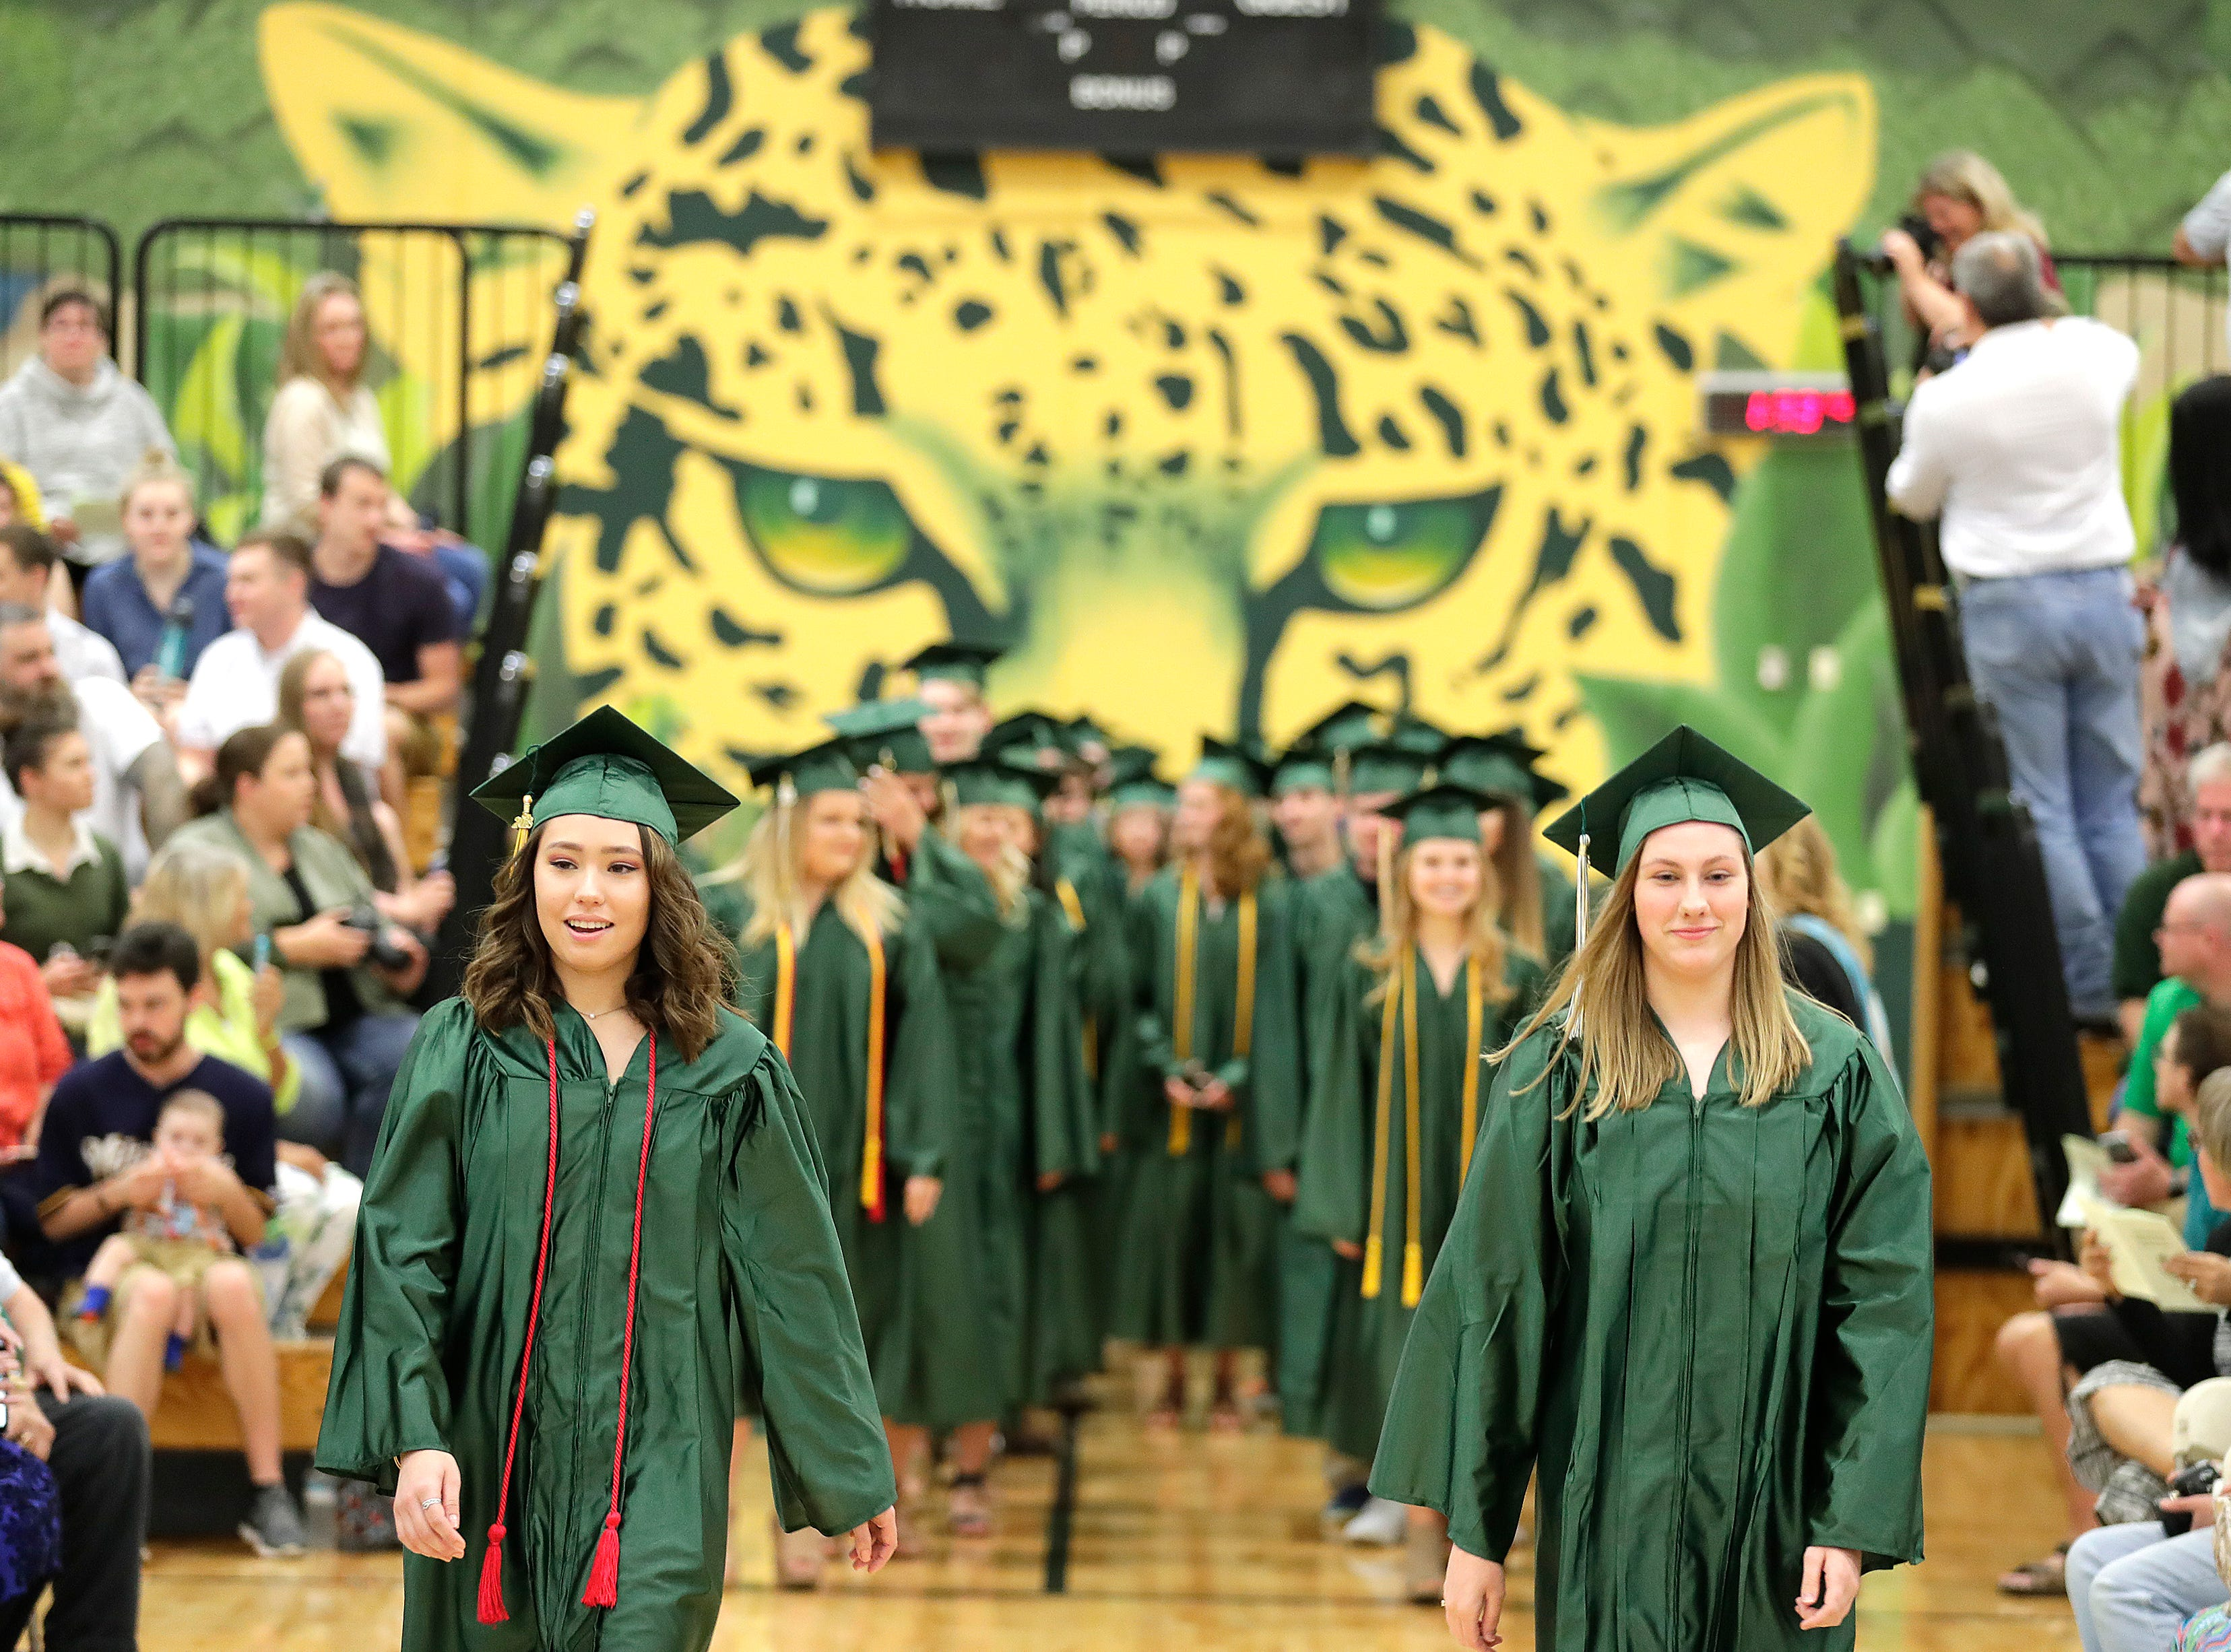 Ashwaubenon High School graduating students walk into graduation ceremonies Sunday, June 3, 2018 in Ashwaubenon, Wis.